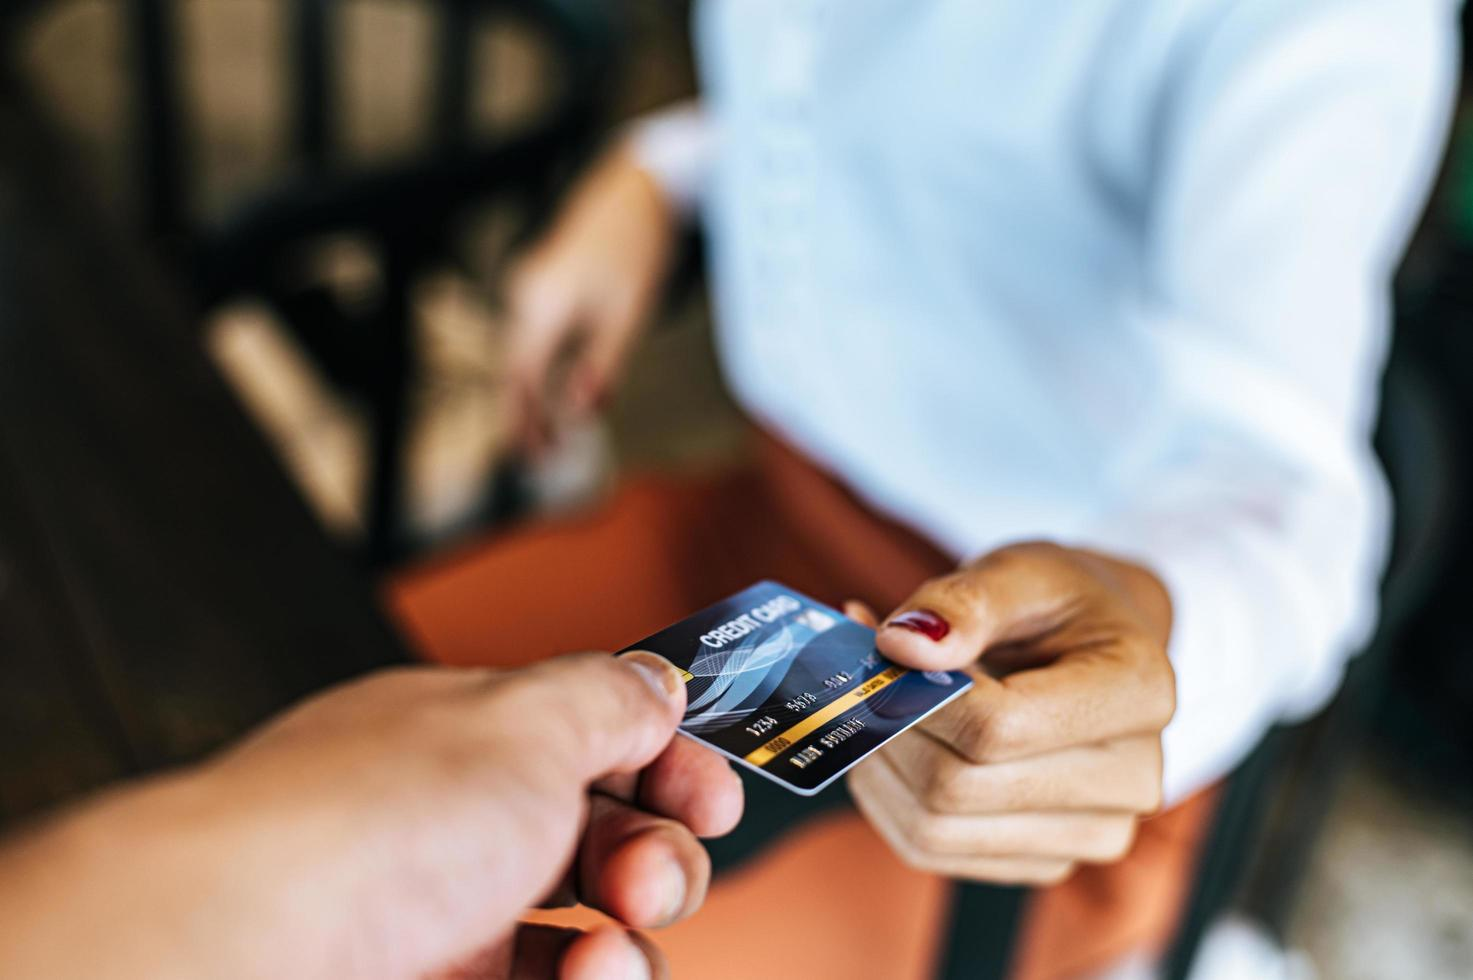 Woman submitting credit card to pay for goods photo